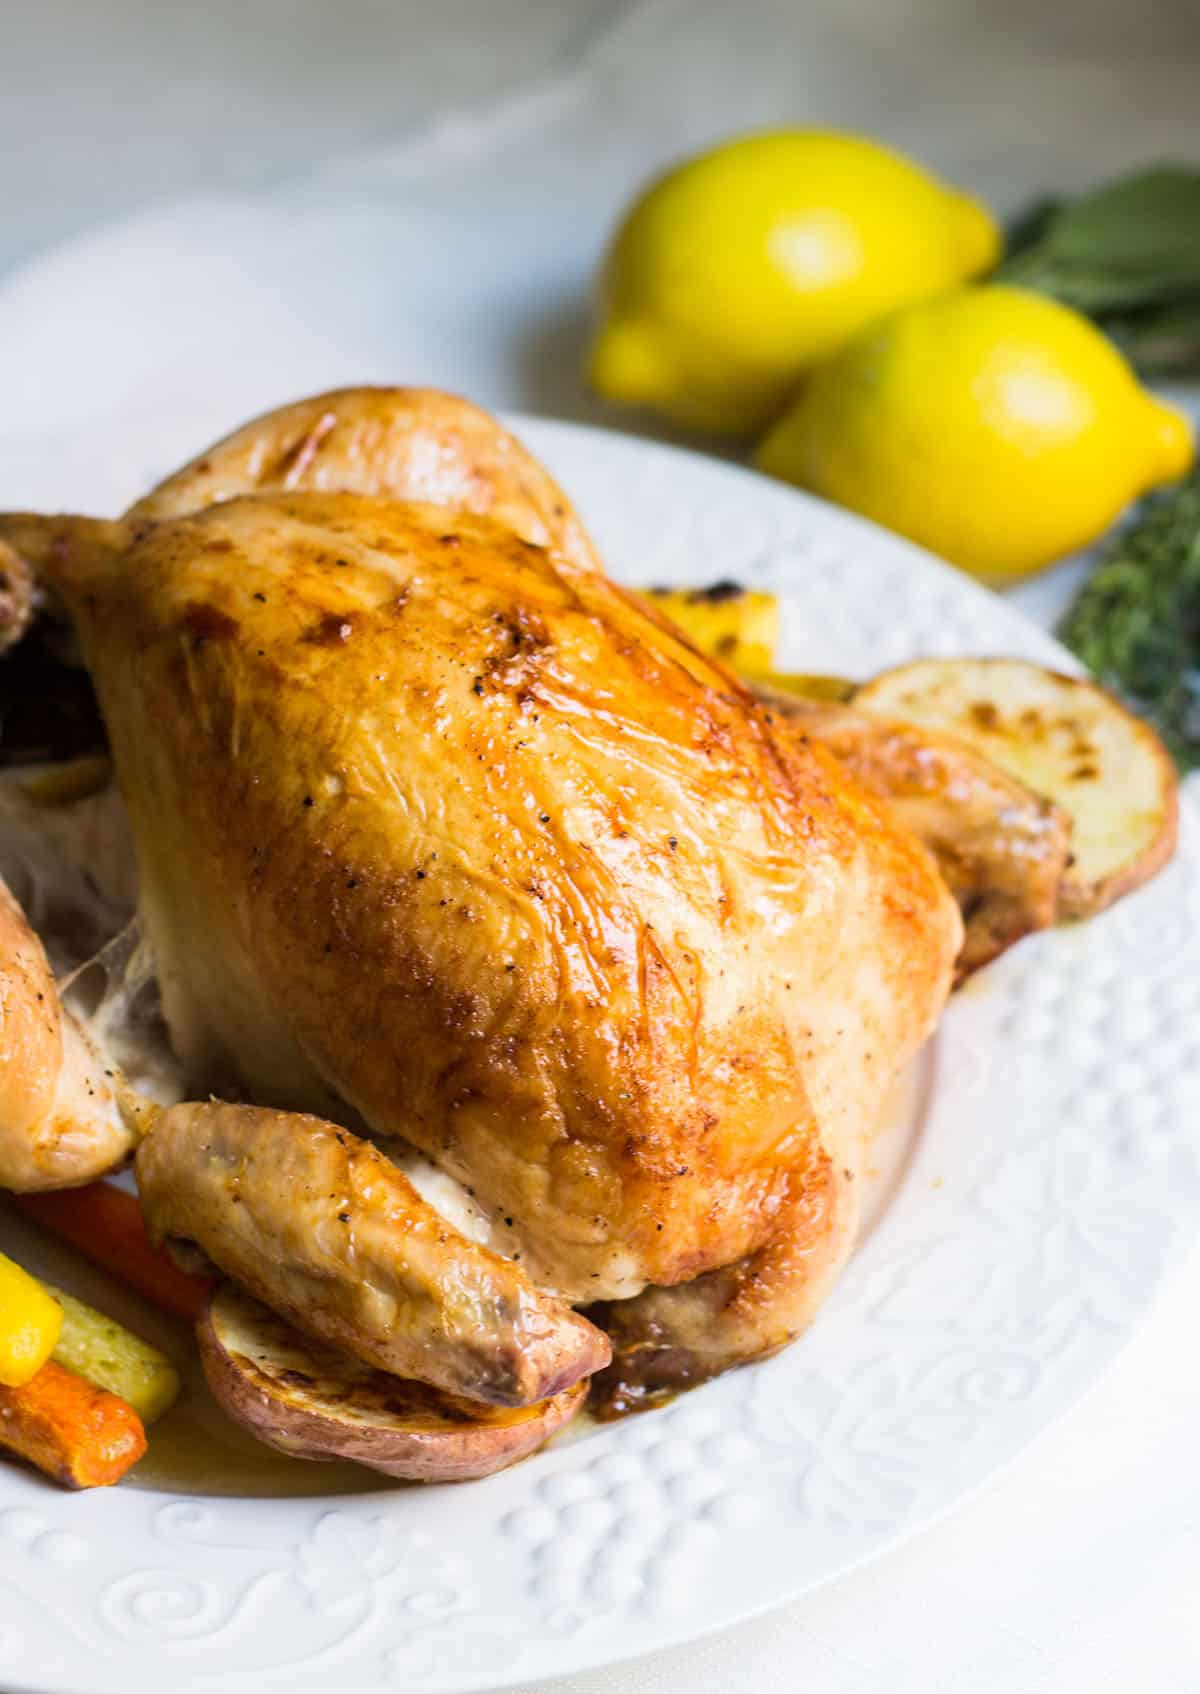 Poulet Roti: Roast chicken done the French way. A recipe for juicy, crisp chicken that'll taste and look fantastic. Recipe via MonPetitFour.com